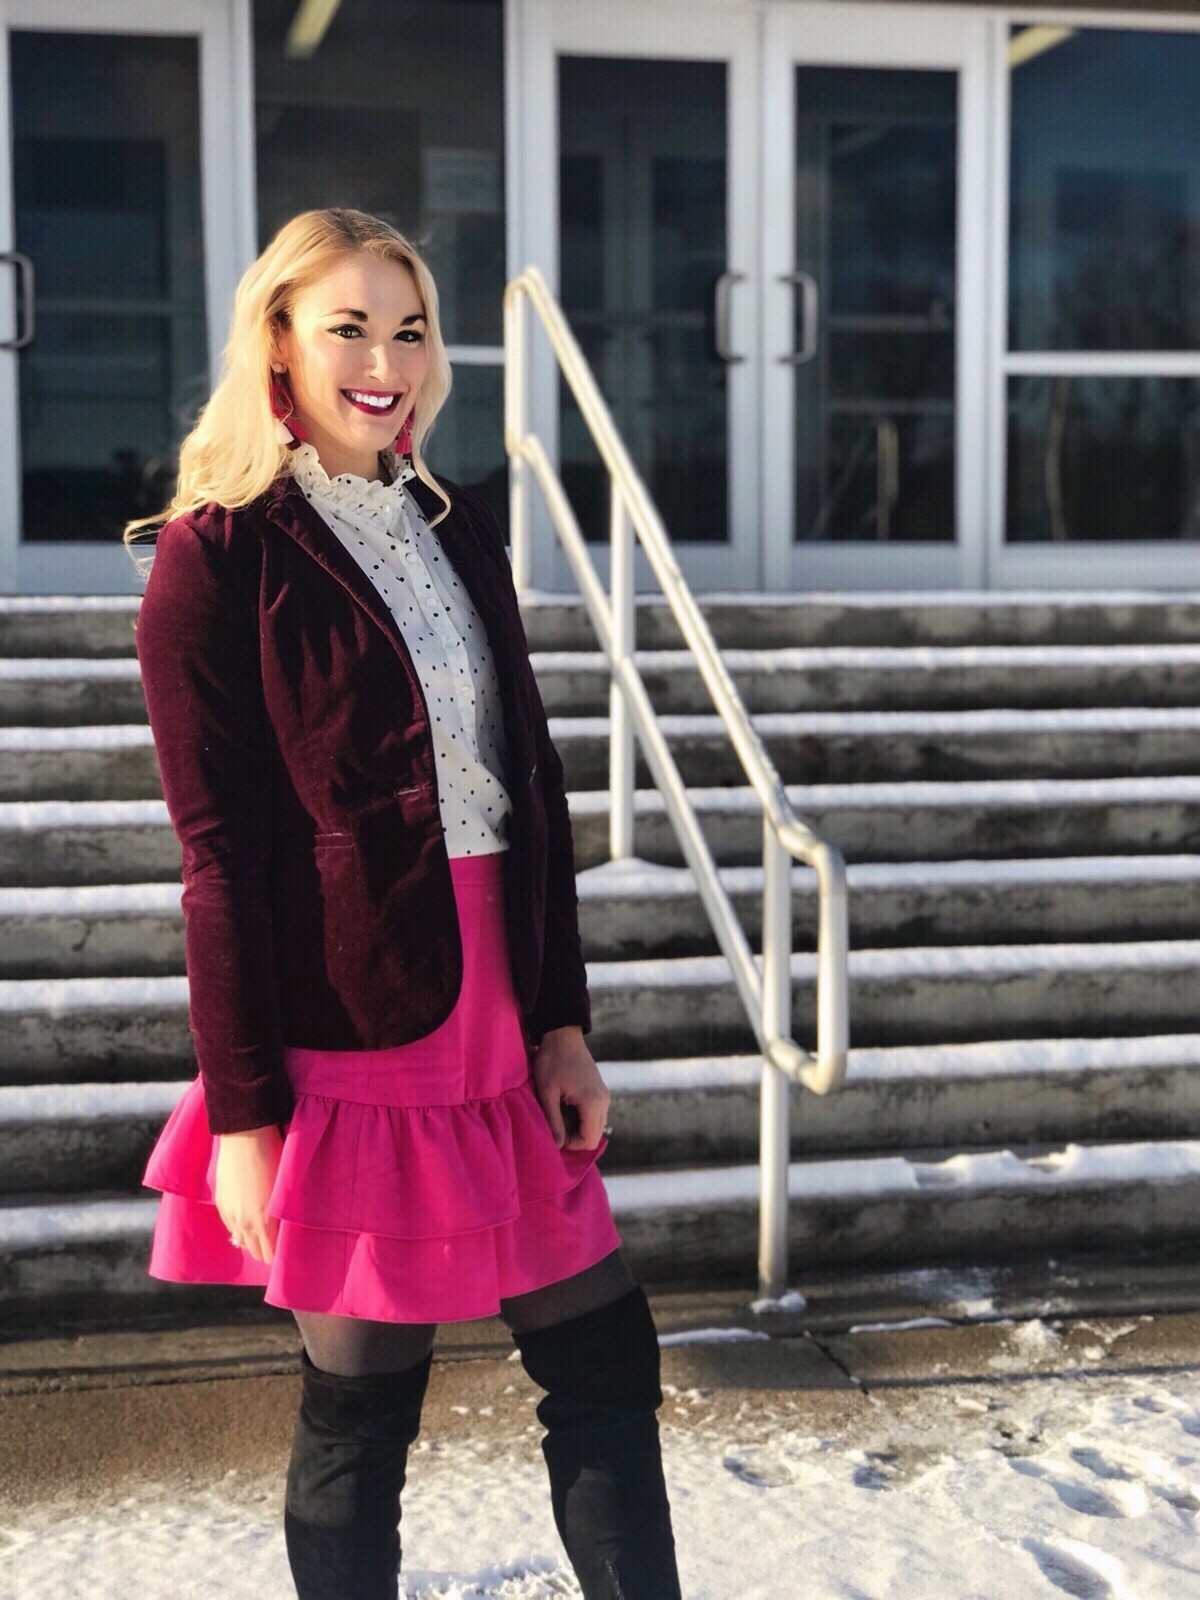 Velvet Blazer | Pink Ruffle Skirt | Over The Knee Boots | Polka Dot Blouse | www.styleherstrong.com